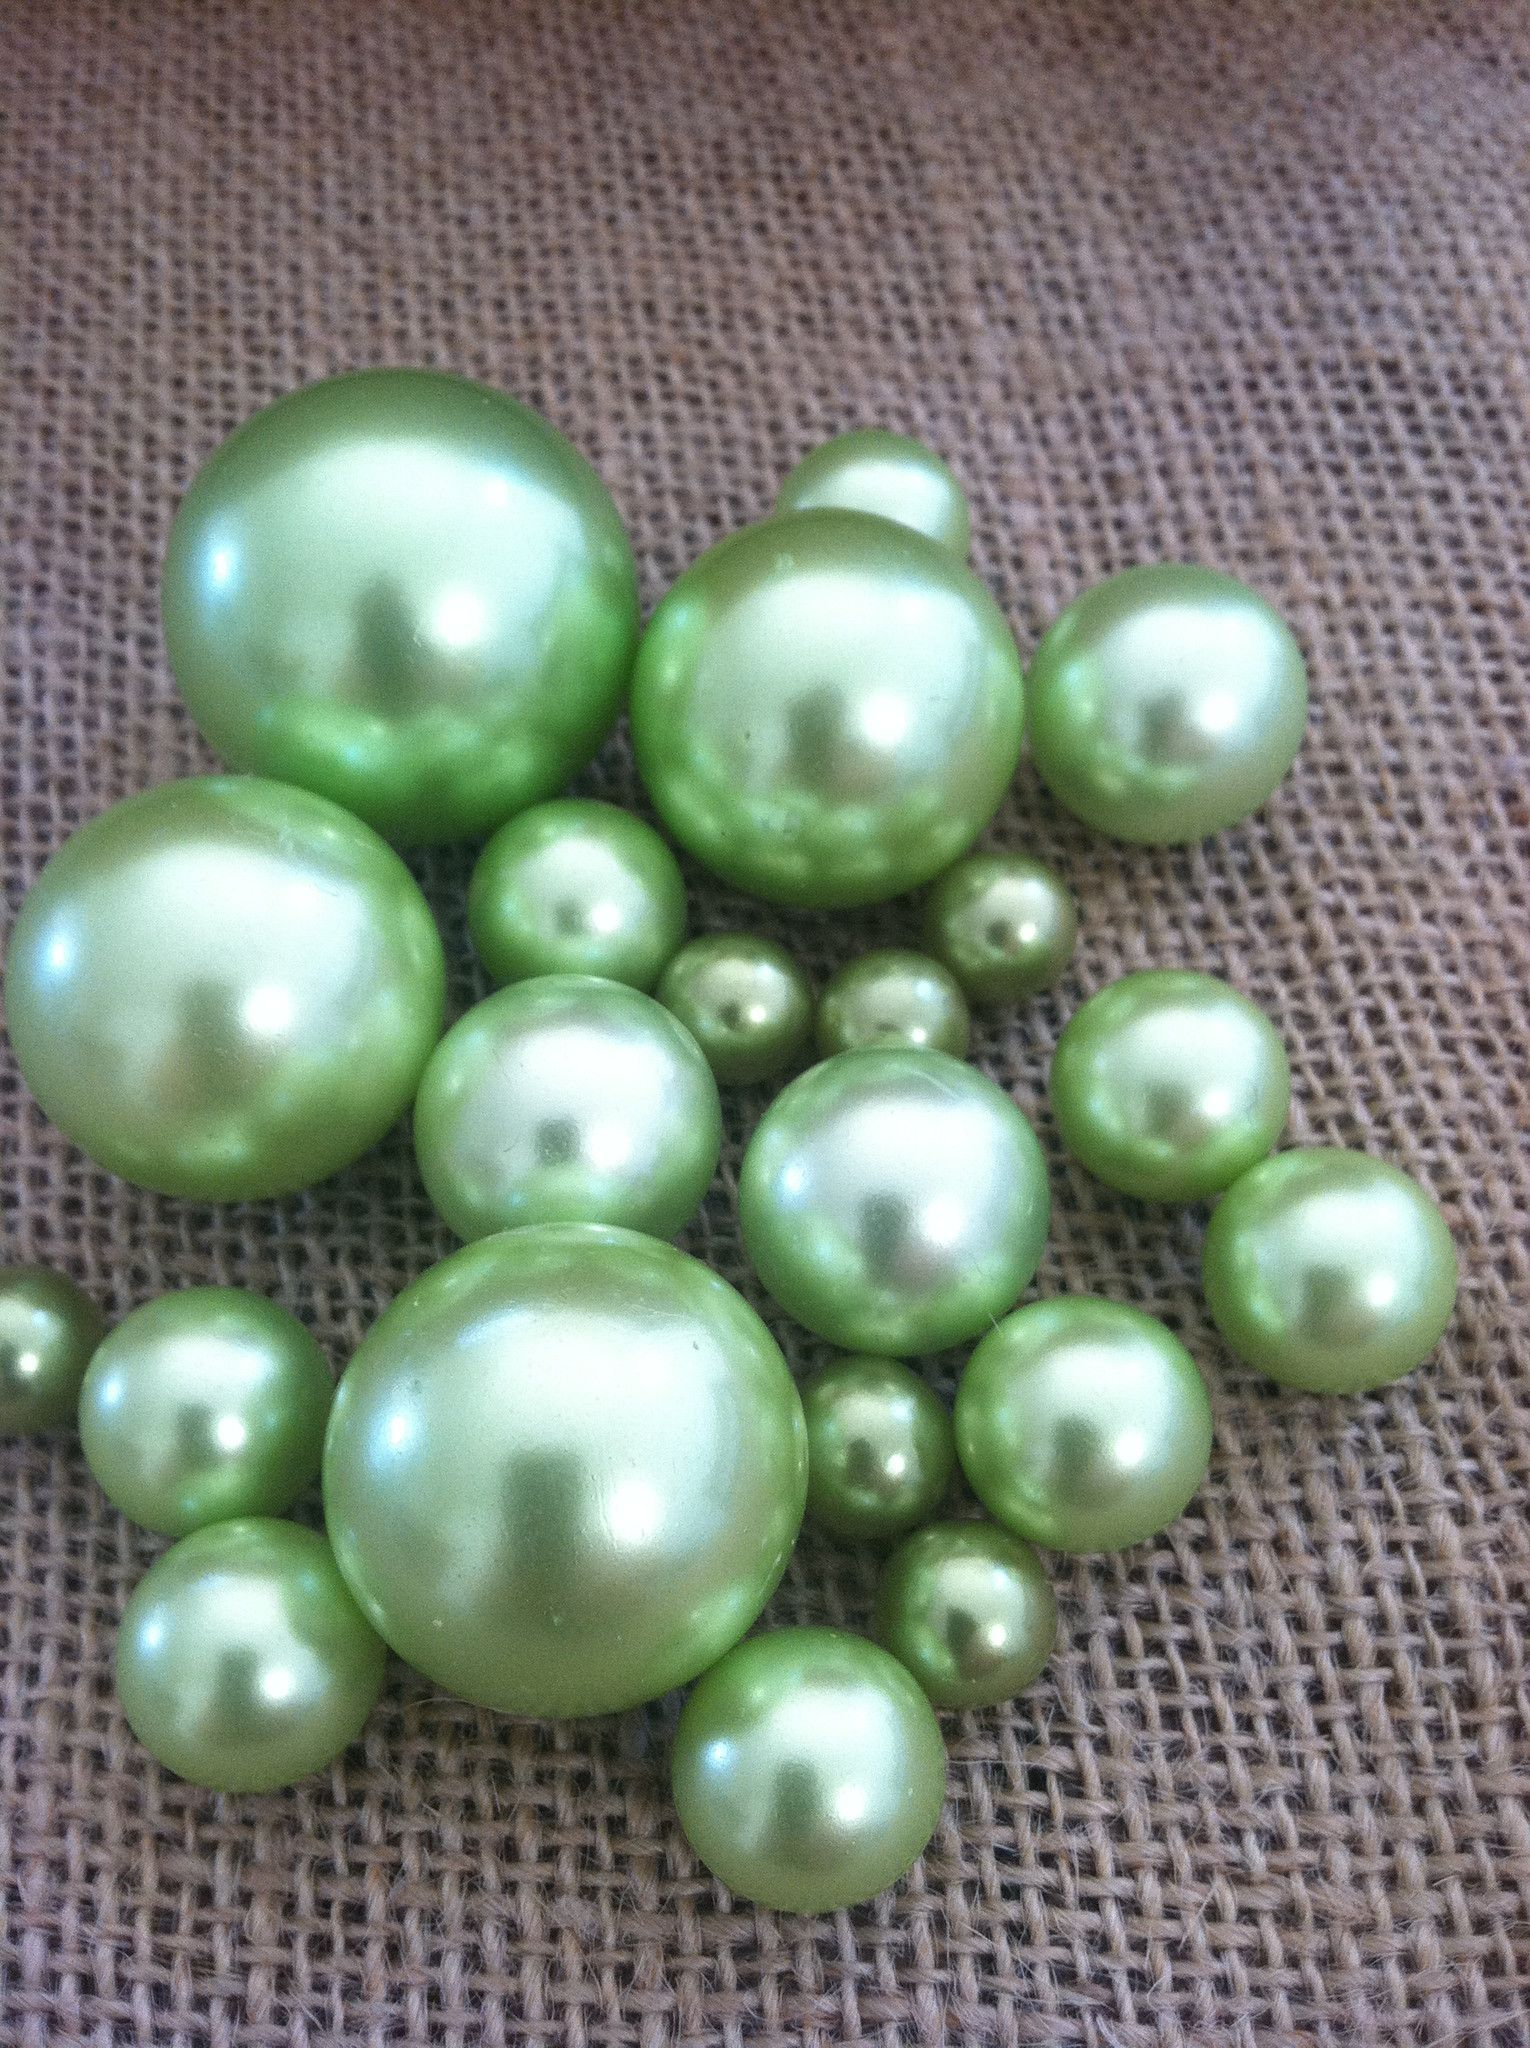 by reproduce of glorious the are in few large survive green grown black a to woarm polynesia tag dark clear these lip waters oysters french img single pearls